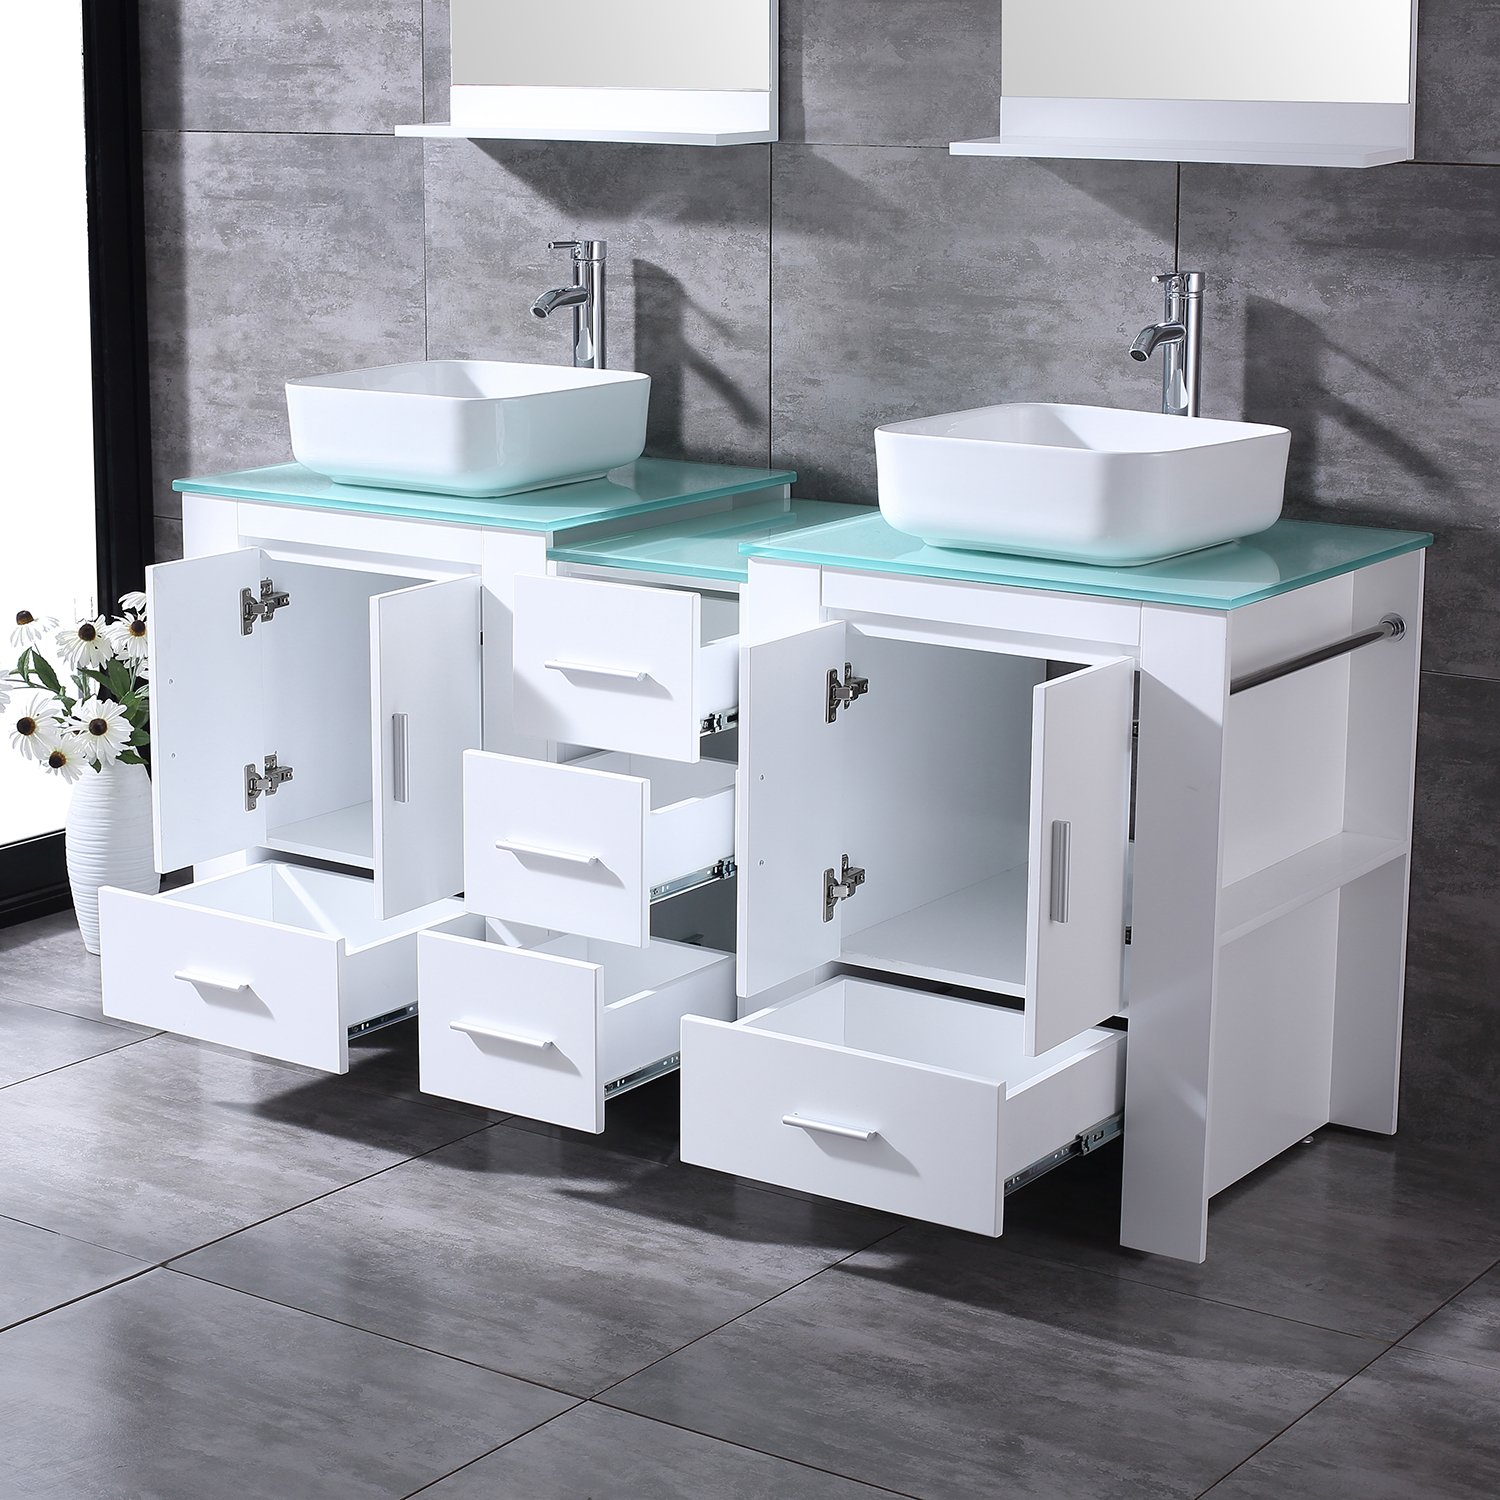 """BATHJOY Luxury 60"""" White Bathroom Double Wood Vanity Cabinet with Square Ceramic Vessel Sink and Mirrors Faucet Drain Combo by BATHJOY (Image #5)"""